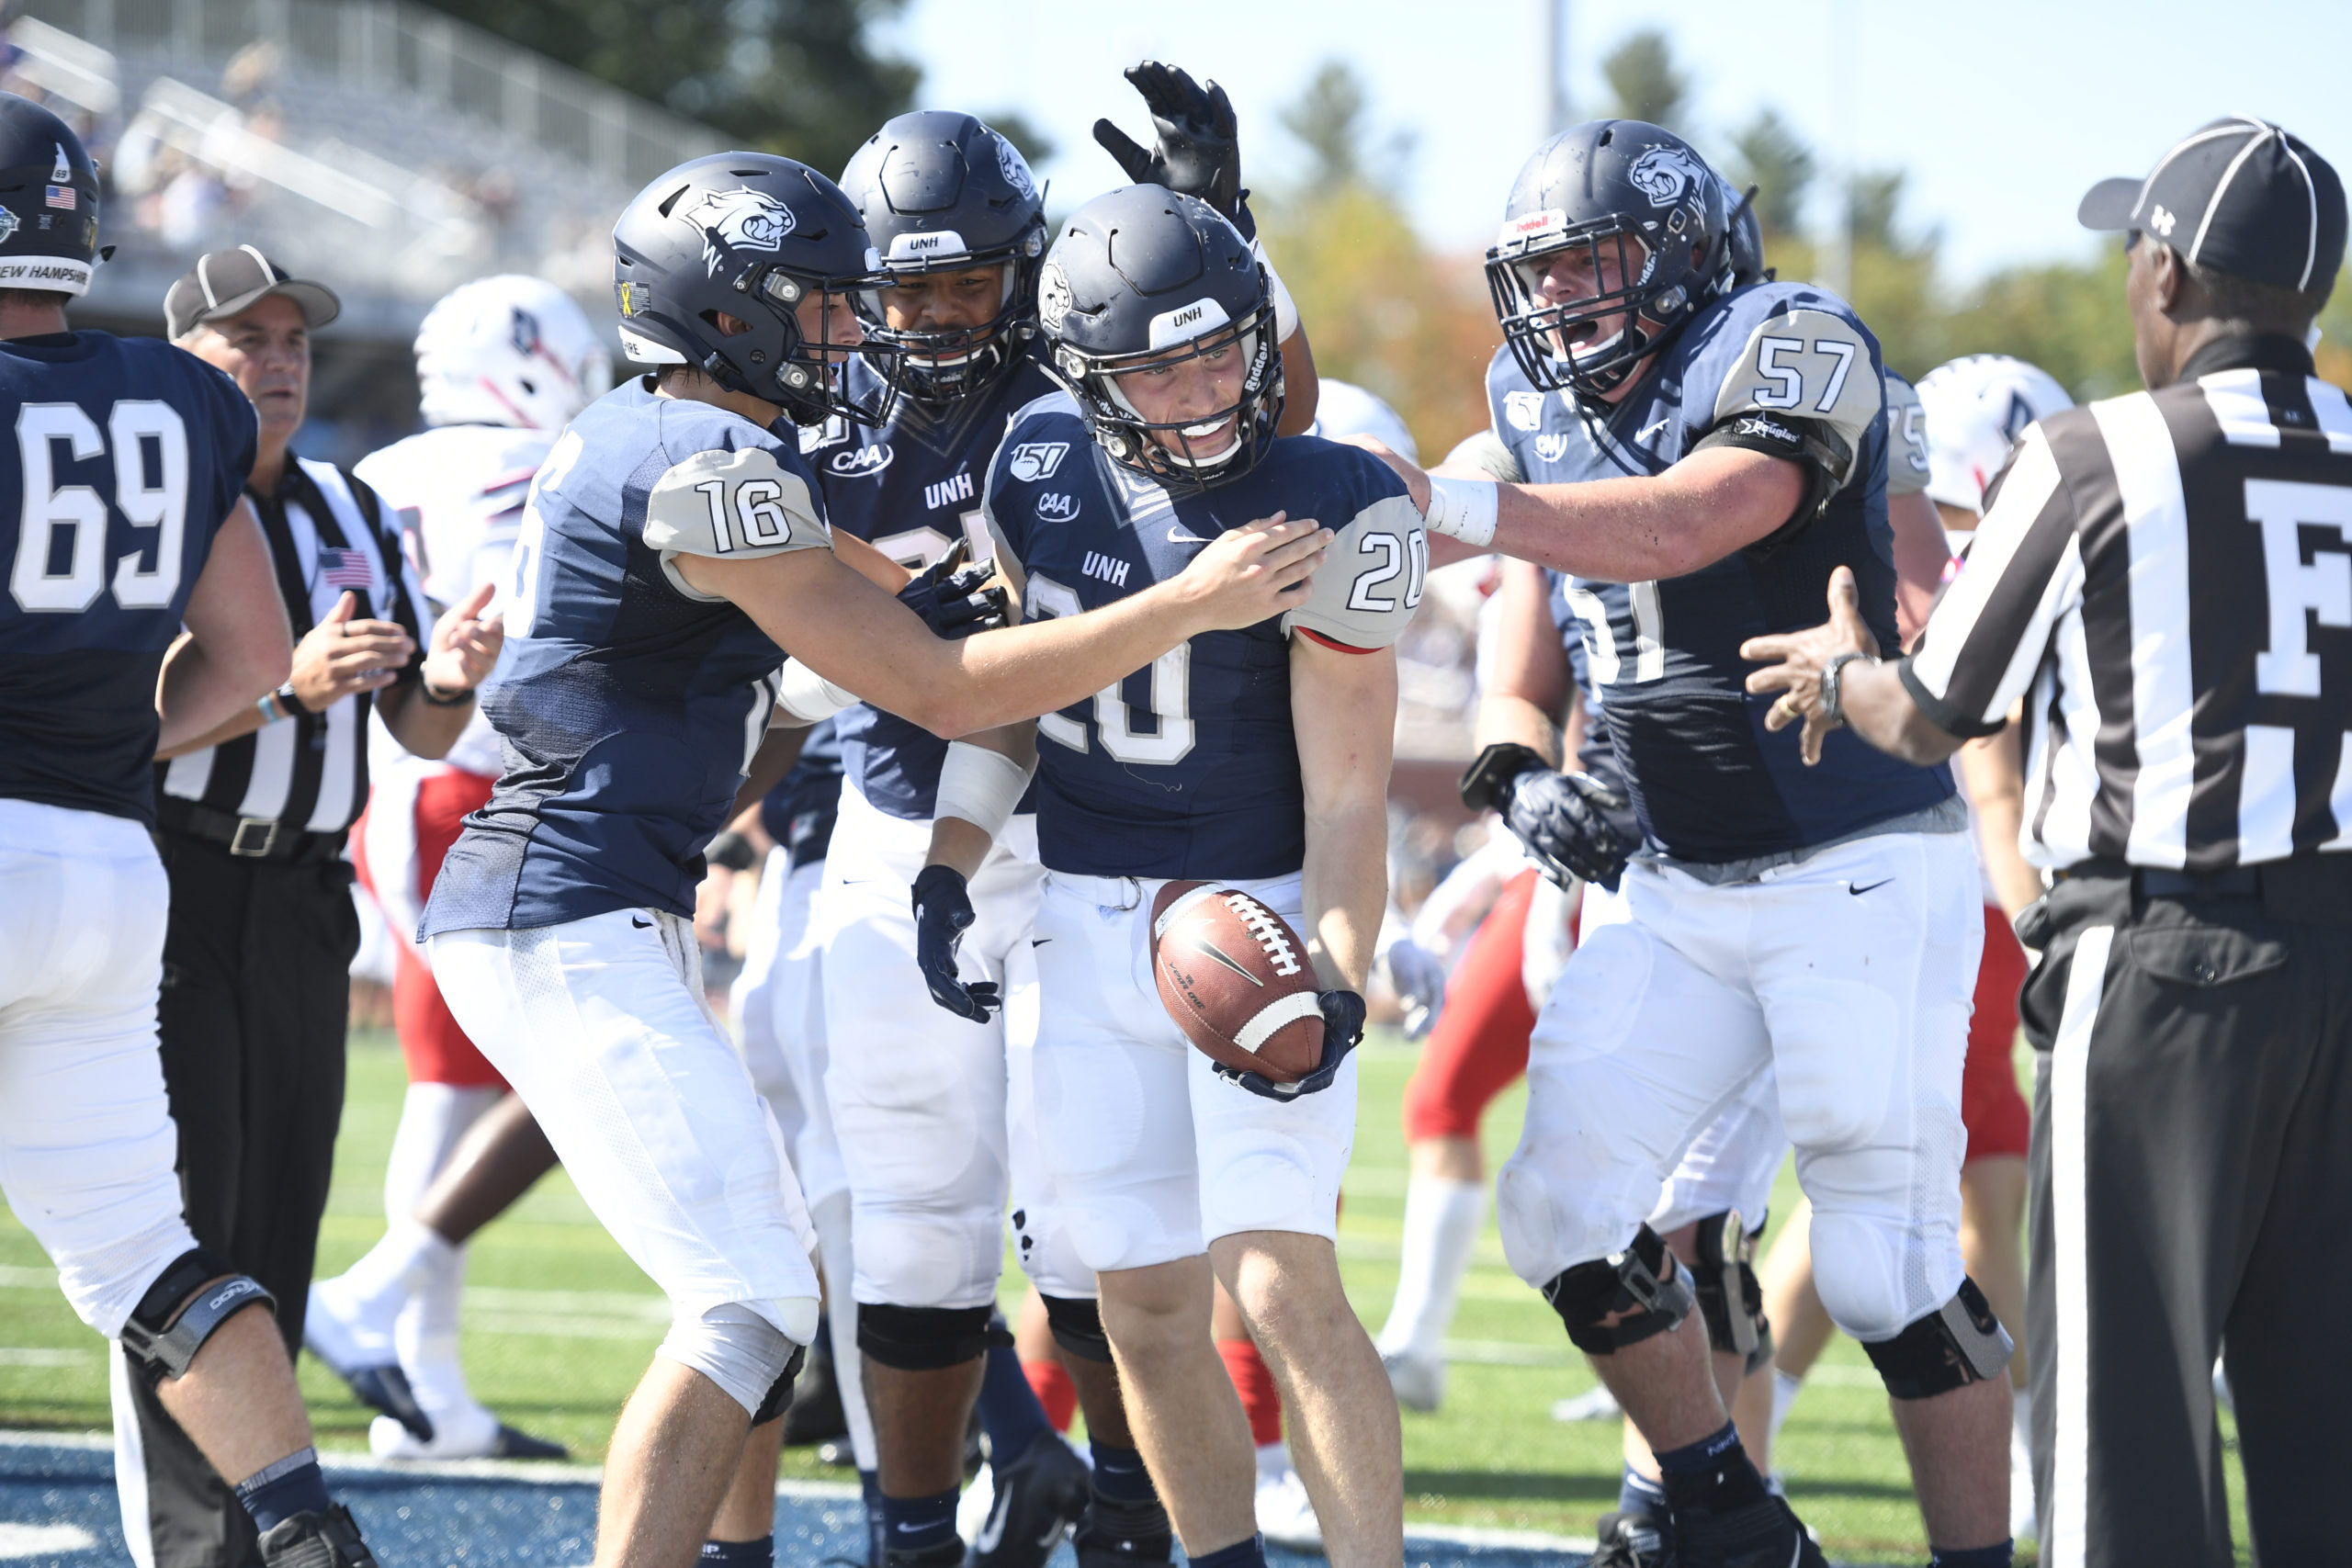 Westhampton Beach graduate Dylan Laube is in his junior season at the University of New Hampshire, trying to adjust to a new normal in the time of Covid-19. He and his UNH teammates are hoping they can play an abbreviated football season in the spring, and were allowed to practice this fall.       GIL TALBOT